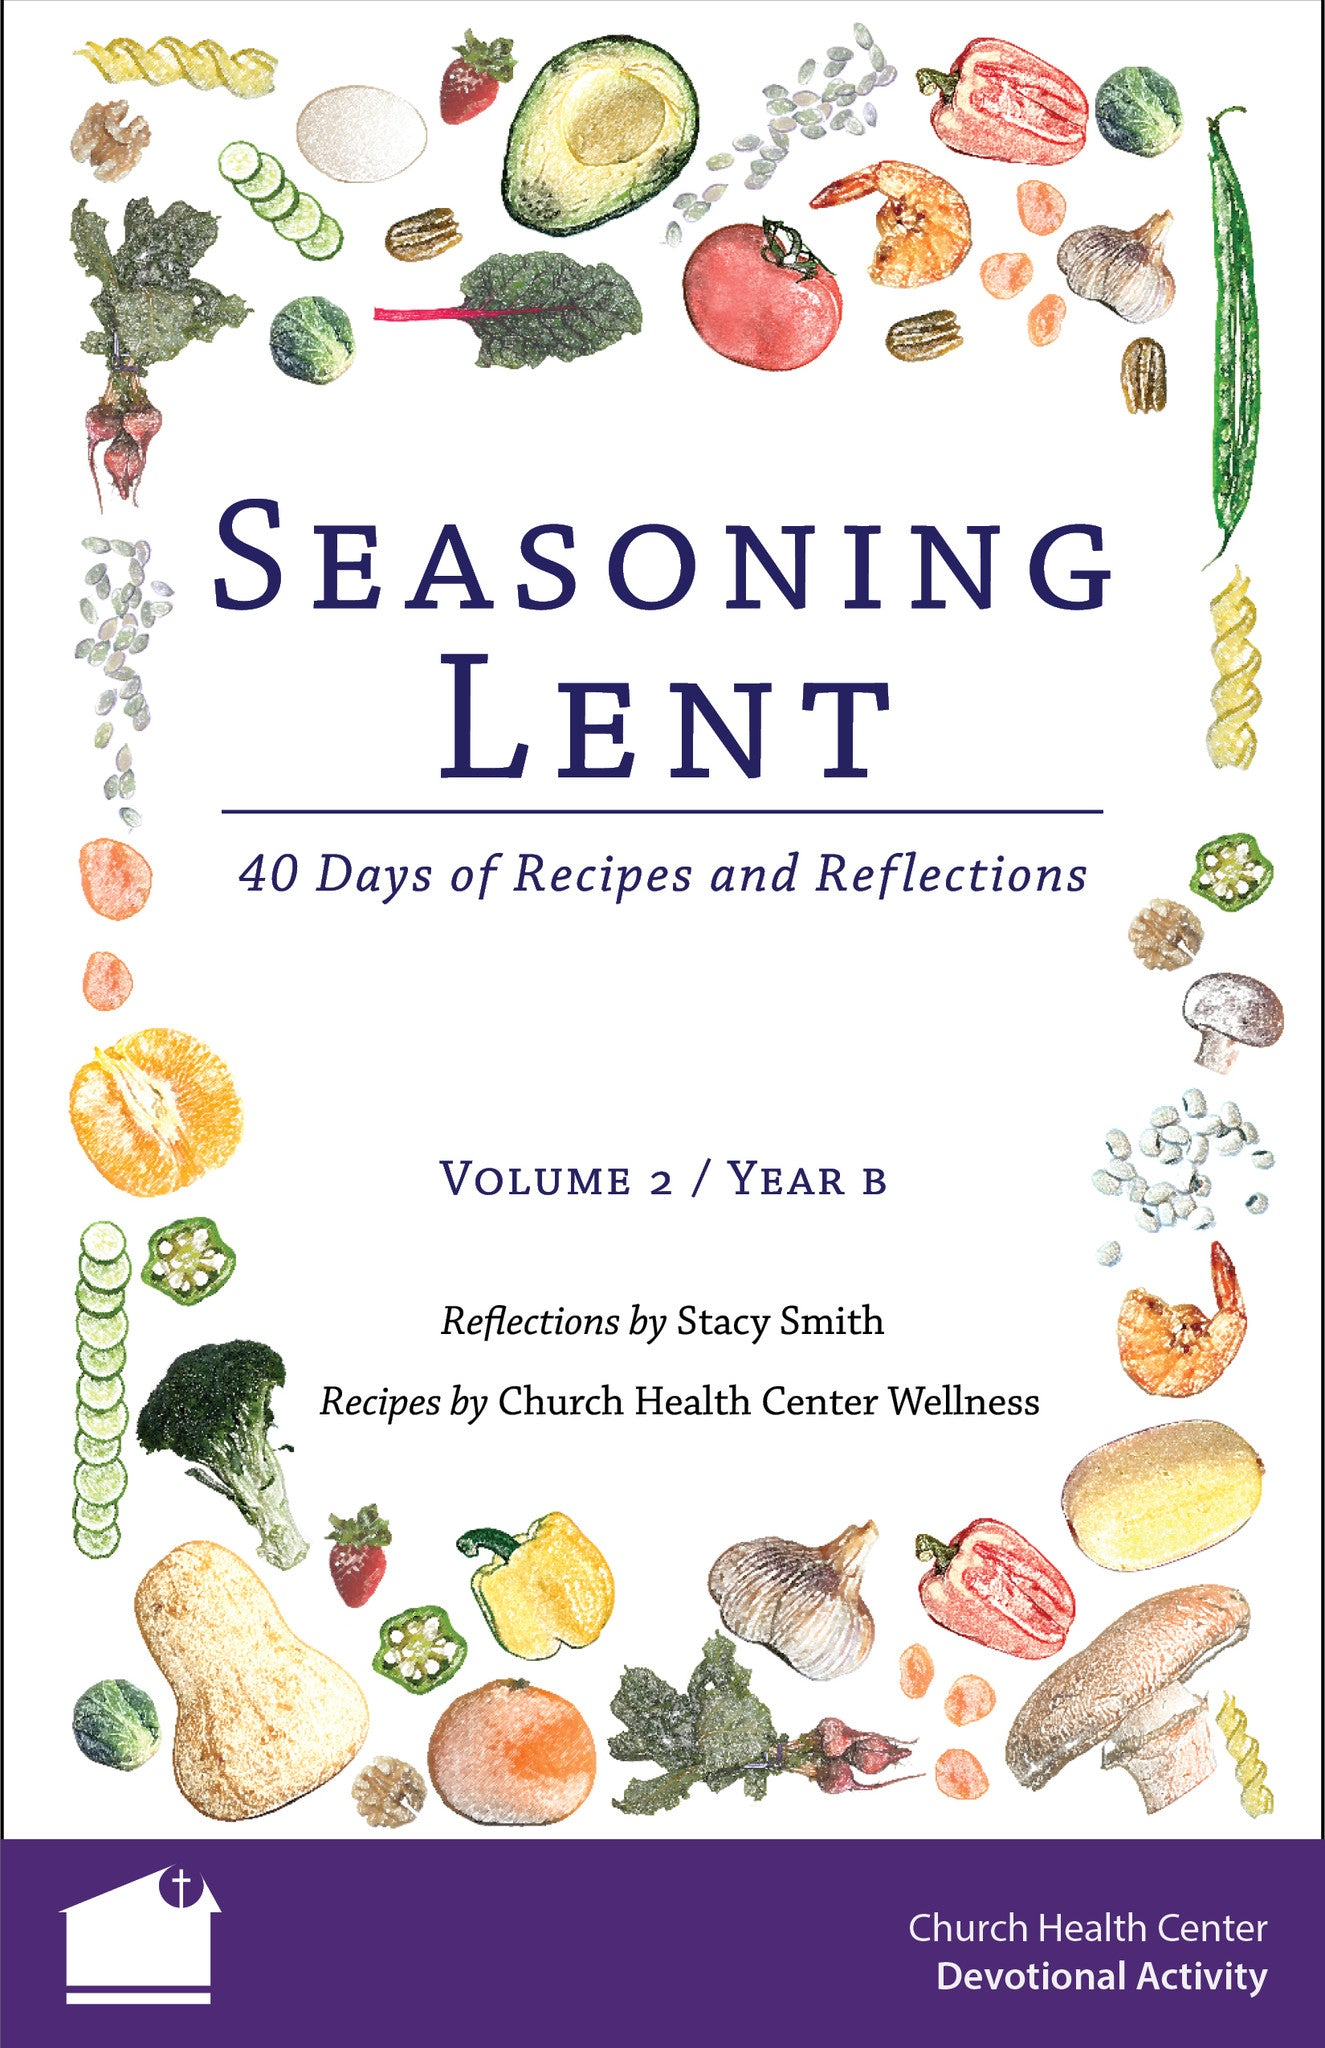 Seasoning Lent: 40 Days of Recipes and Reflections (Volume 1 / Year A)